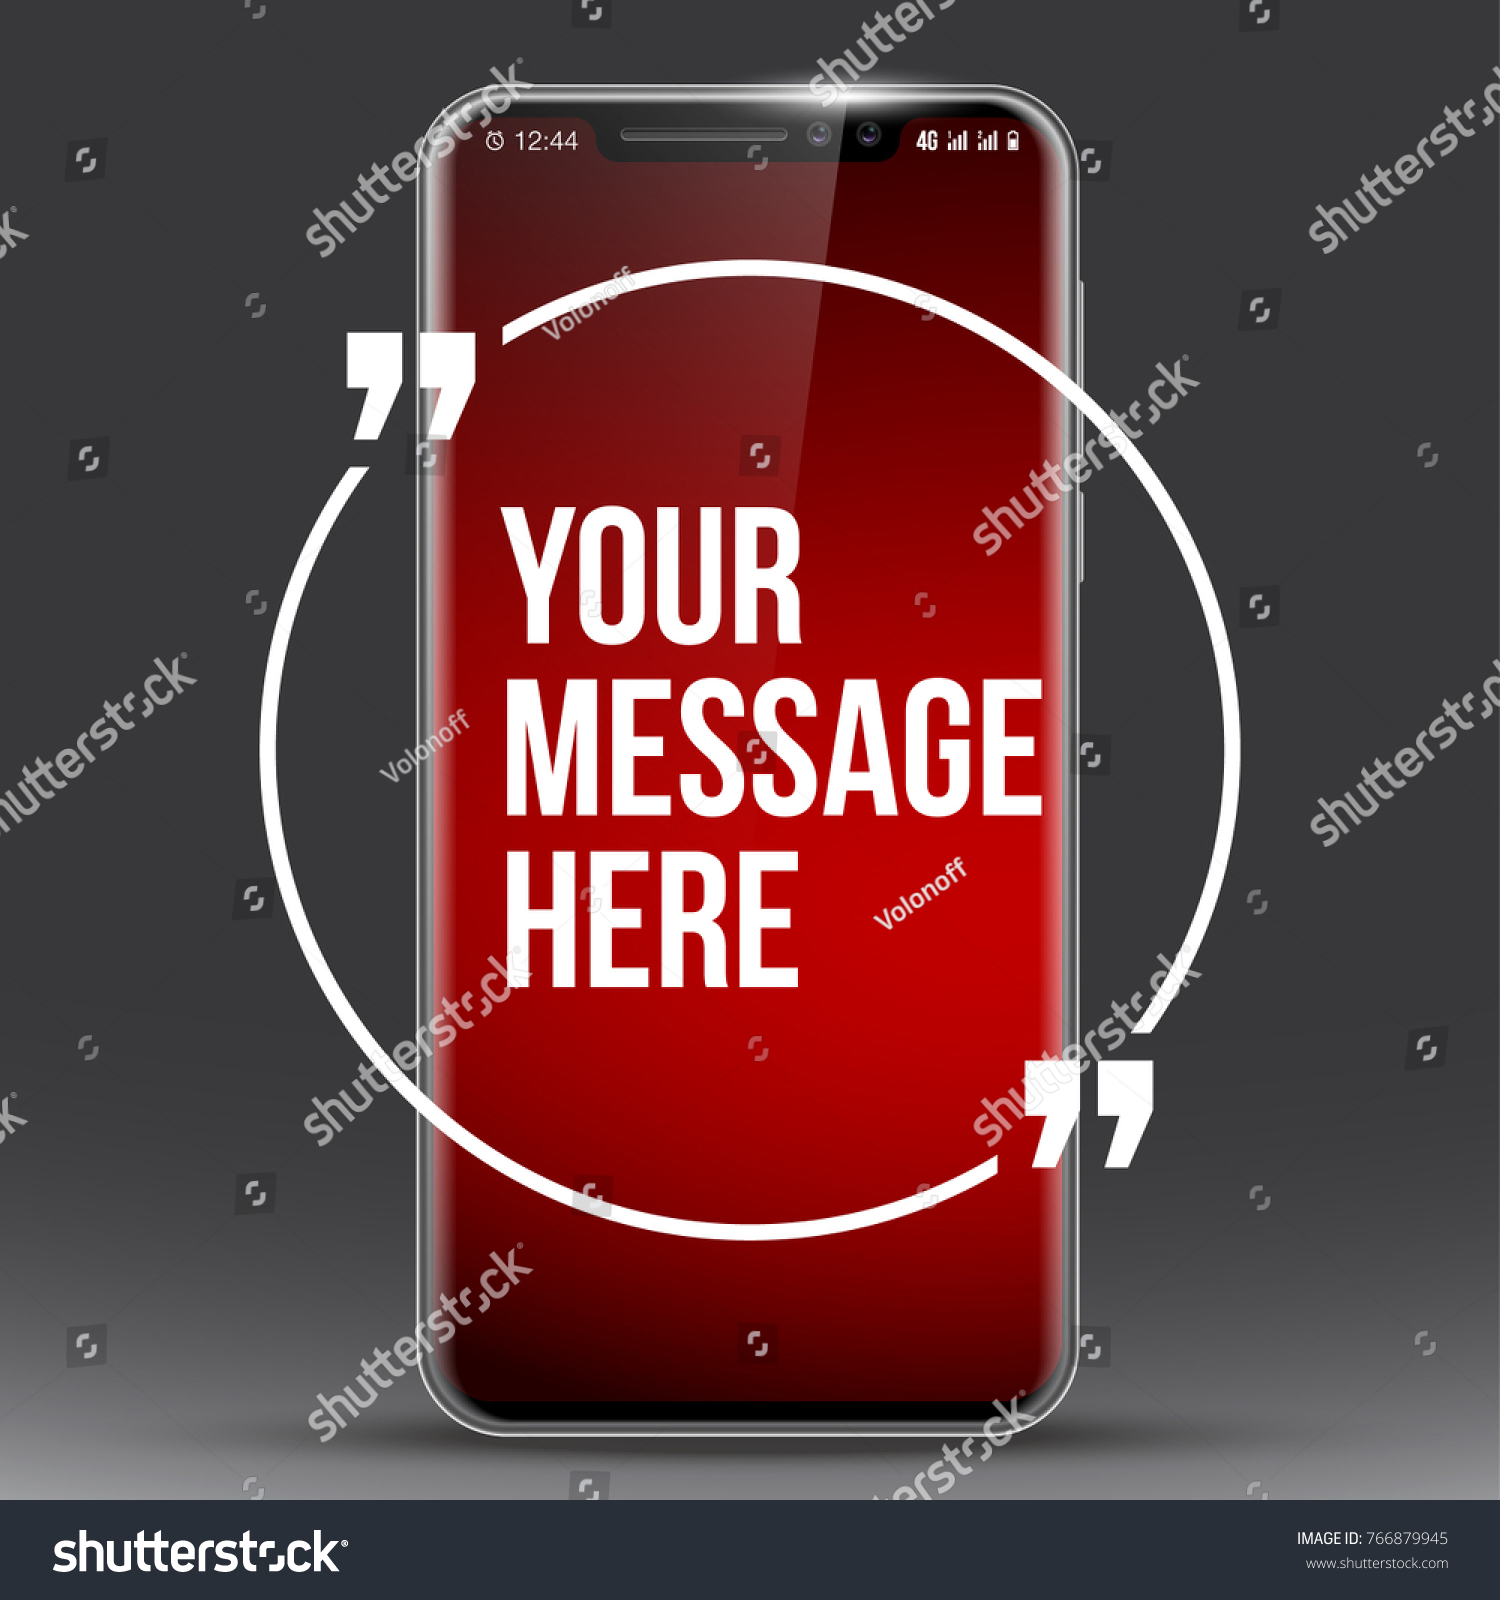 Cell Phone Quotes New Model Vector Mobile Phone Innovative Stock Vector 766879945